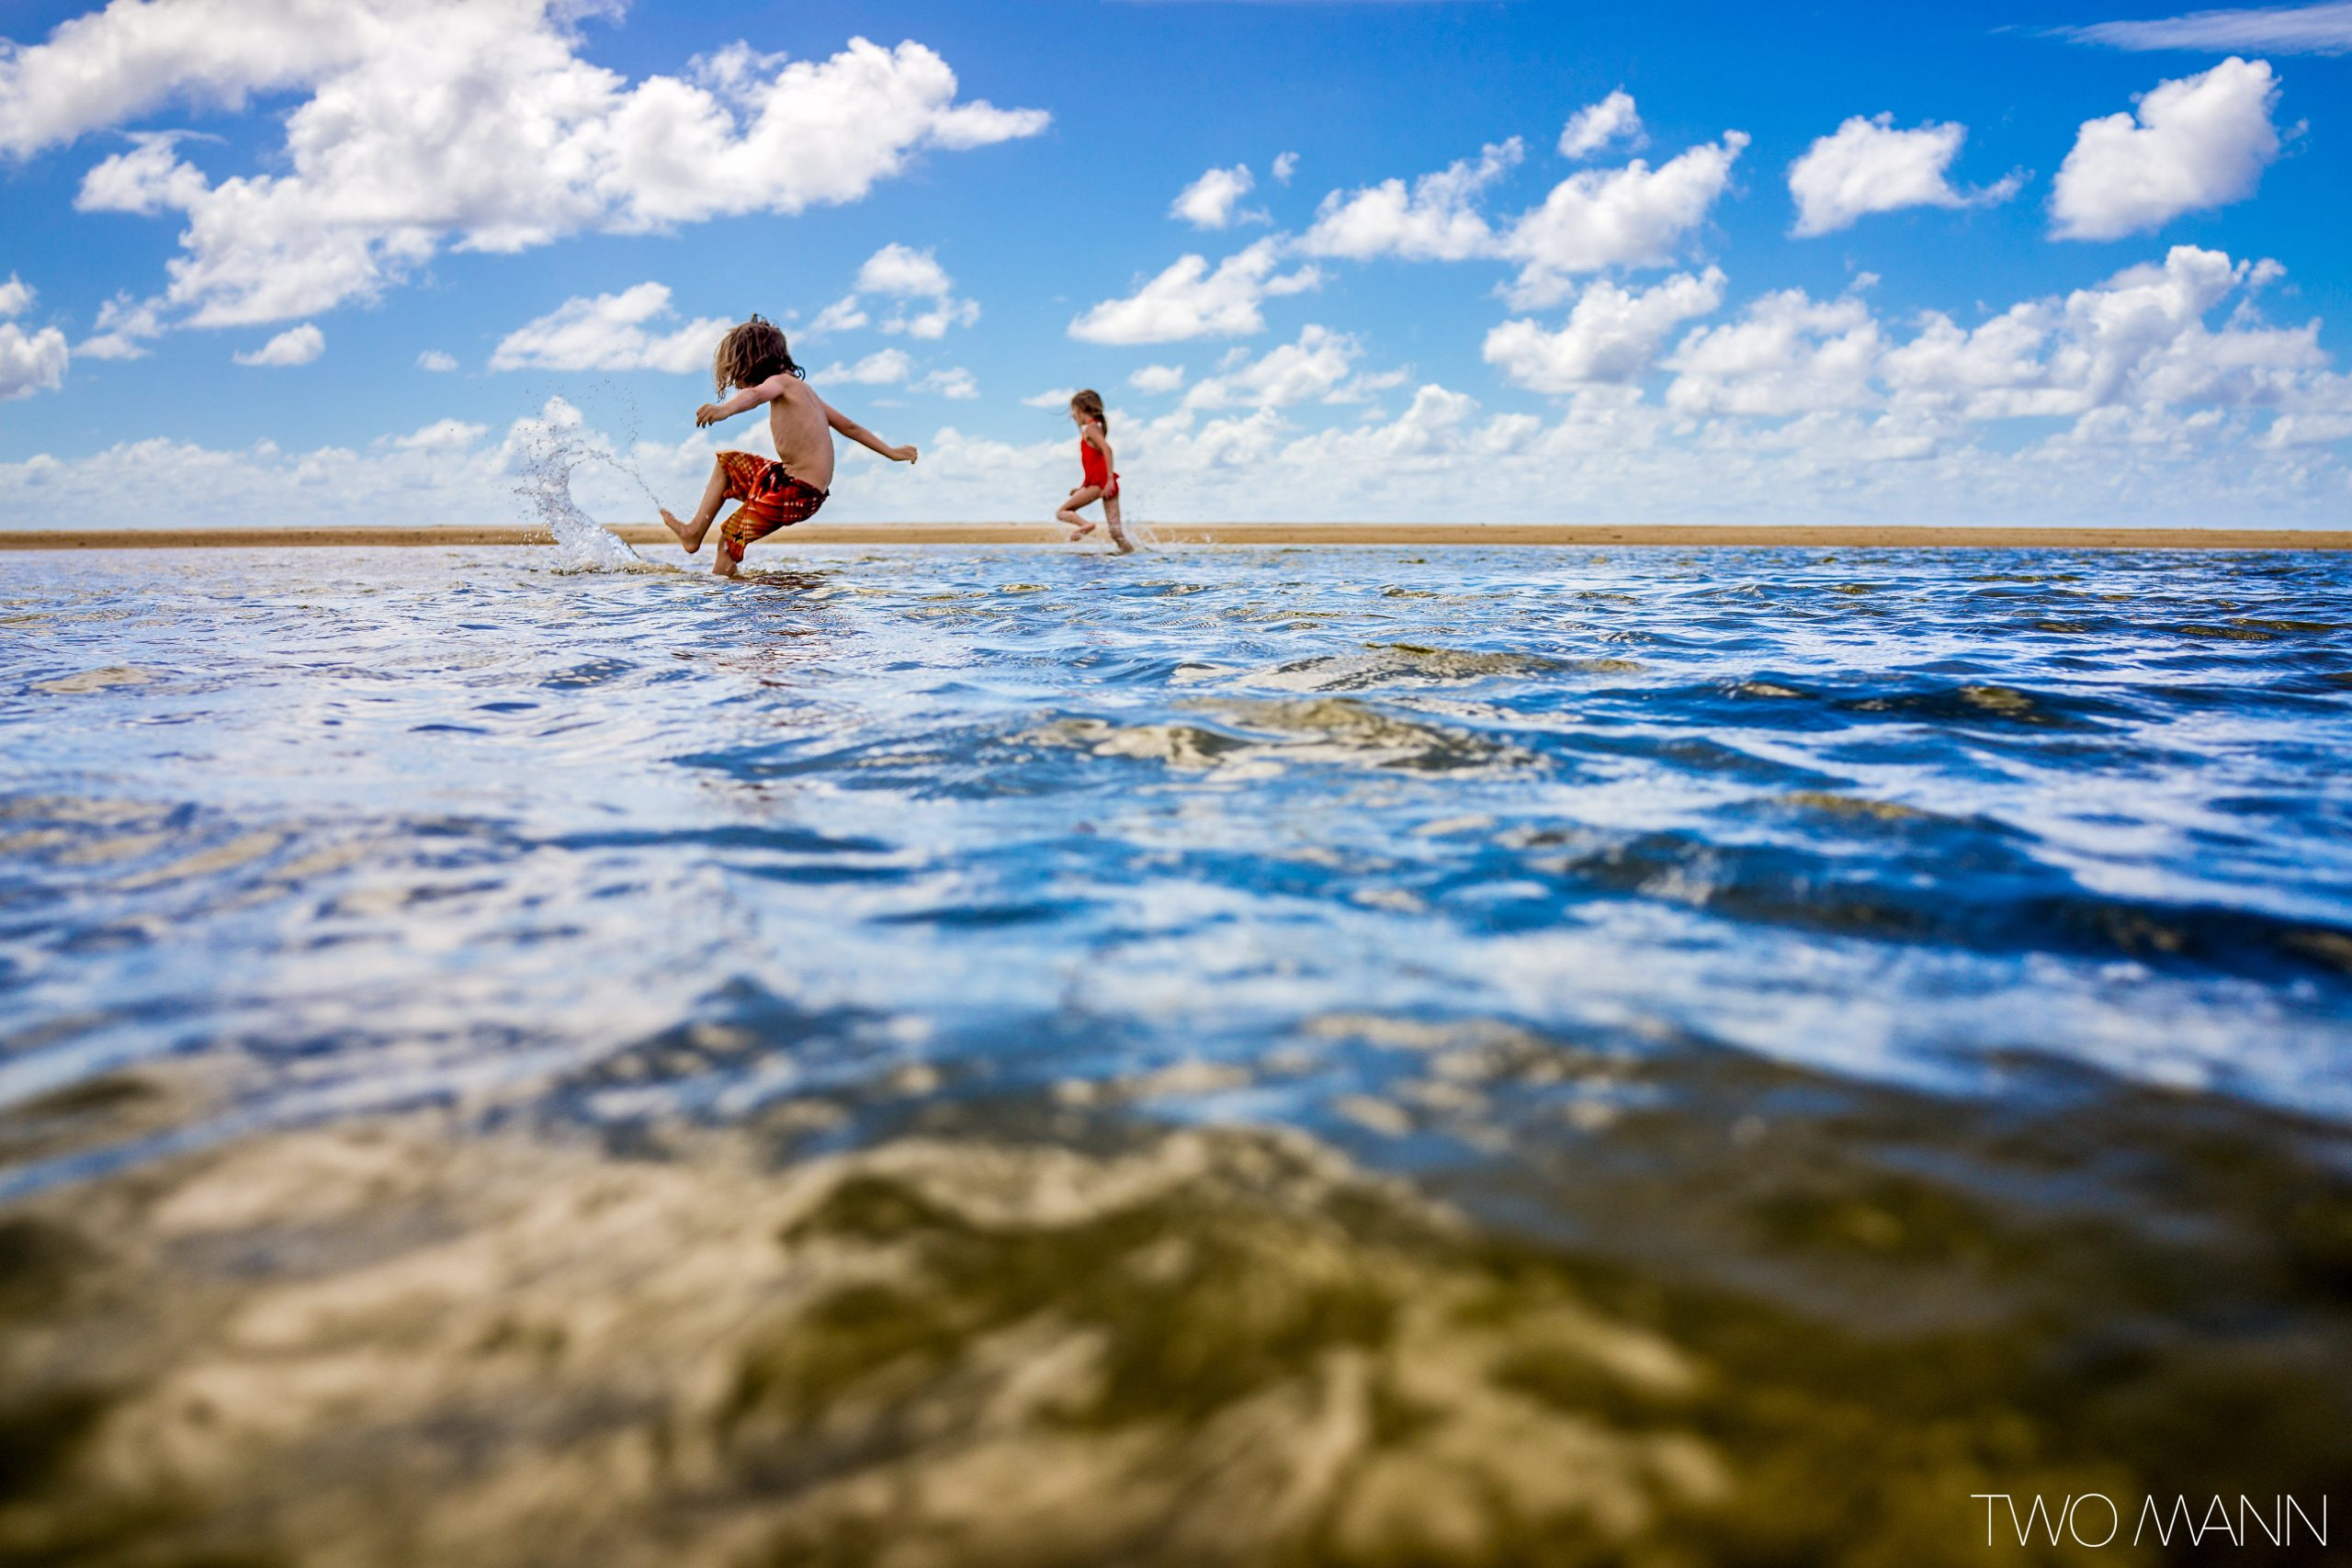 Little boy and girl kicking water at the beach